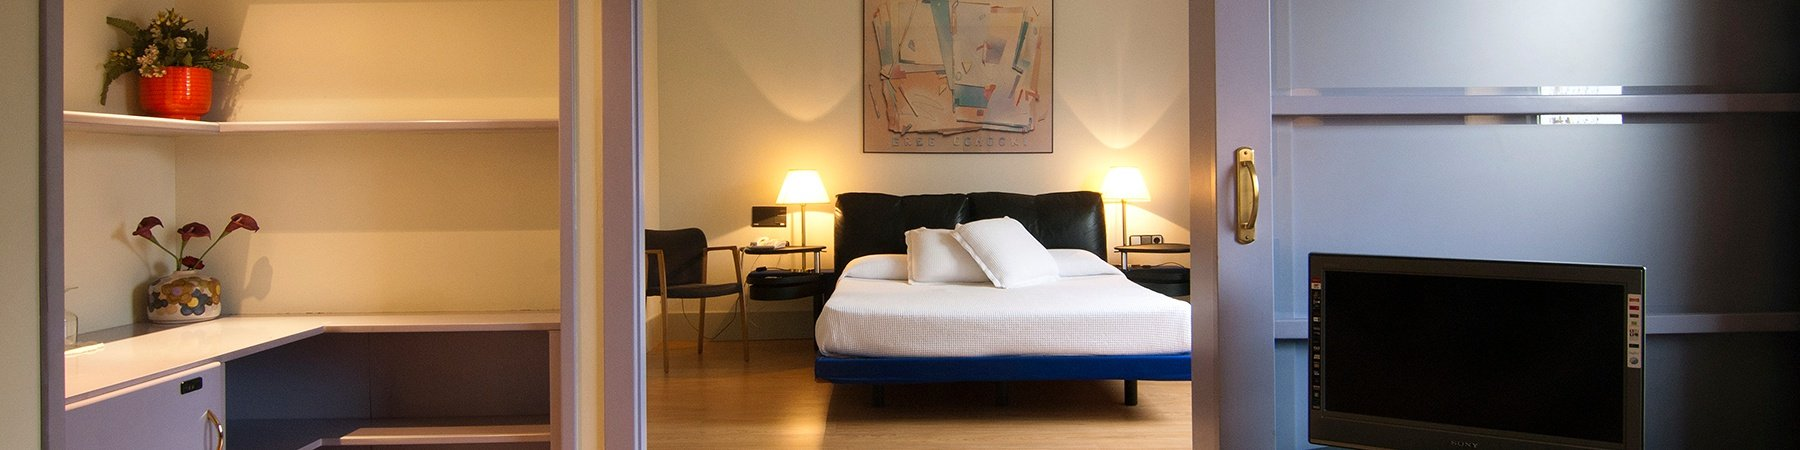 Rooms - Sercotel Domo Hotel